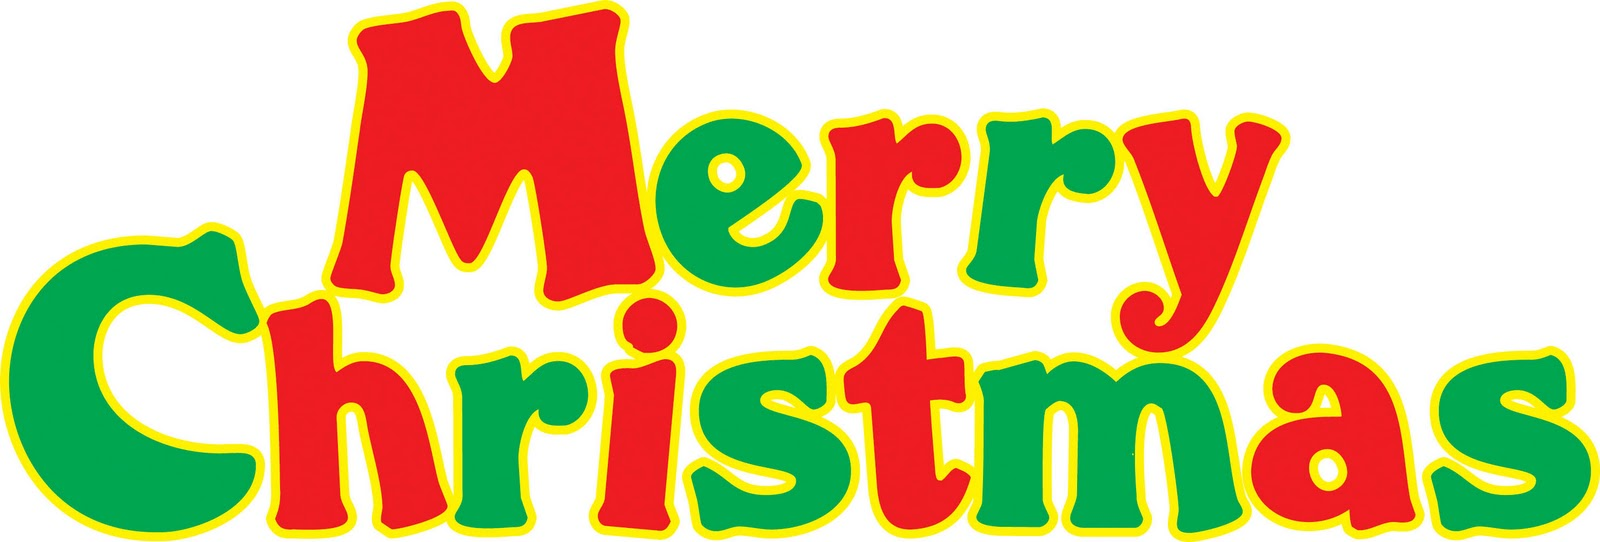 merry christmas banner clipart